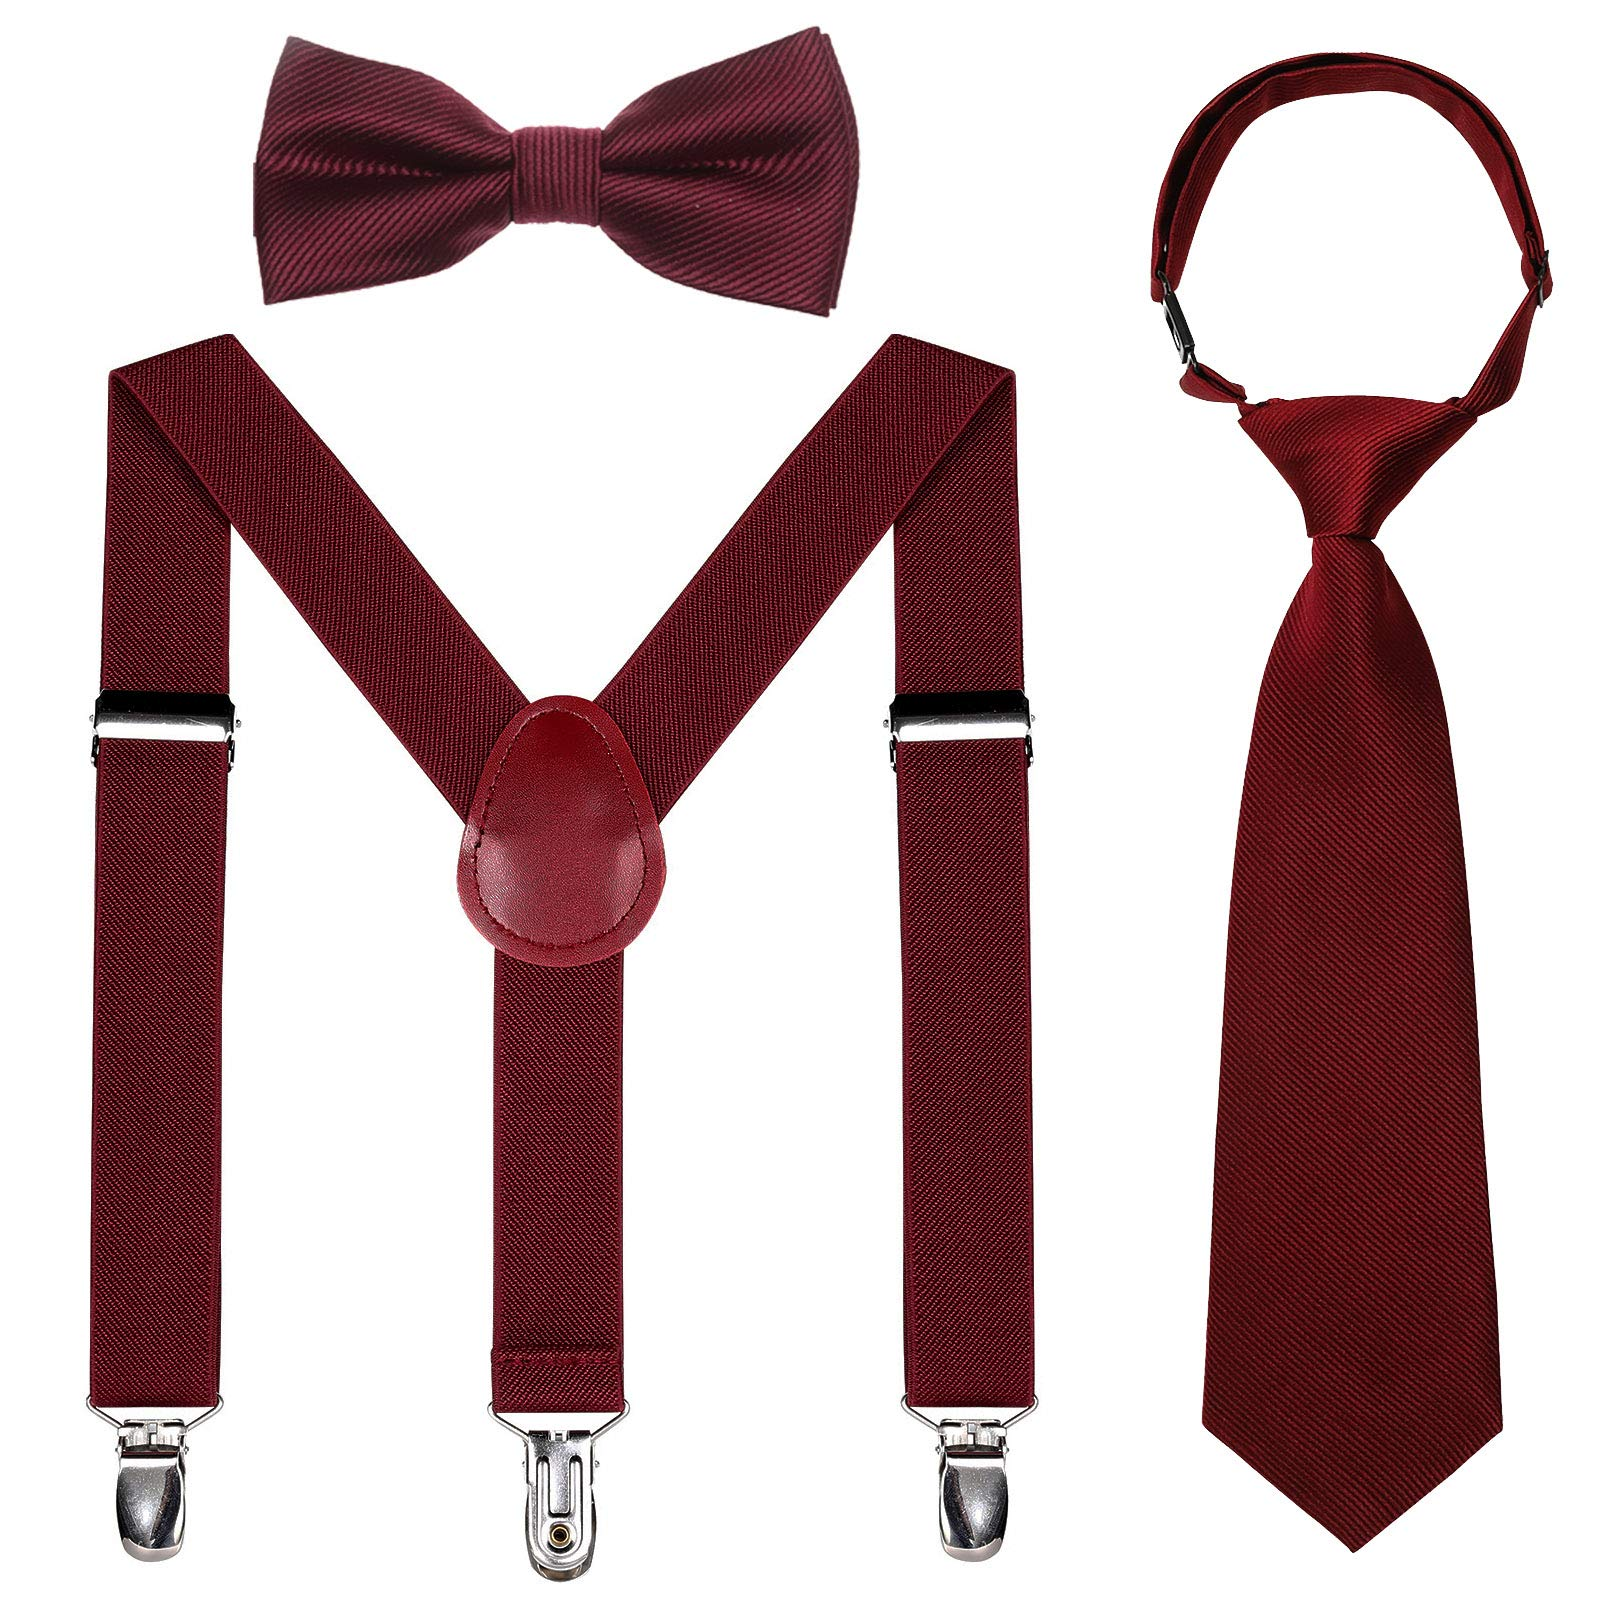 Kids Suspender Bowtie Necktie Sets - Adjustable Elastic Classic Accessory Sets for 6 Months to 13 Year Old Boys & Girls (Wine red, 26 Inches (Fit 6 Months to 6Years)) by Kajeer